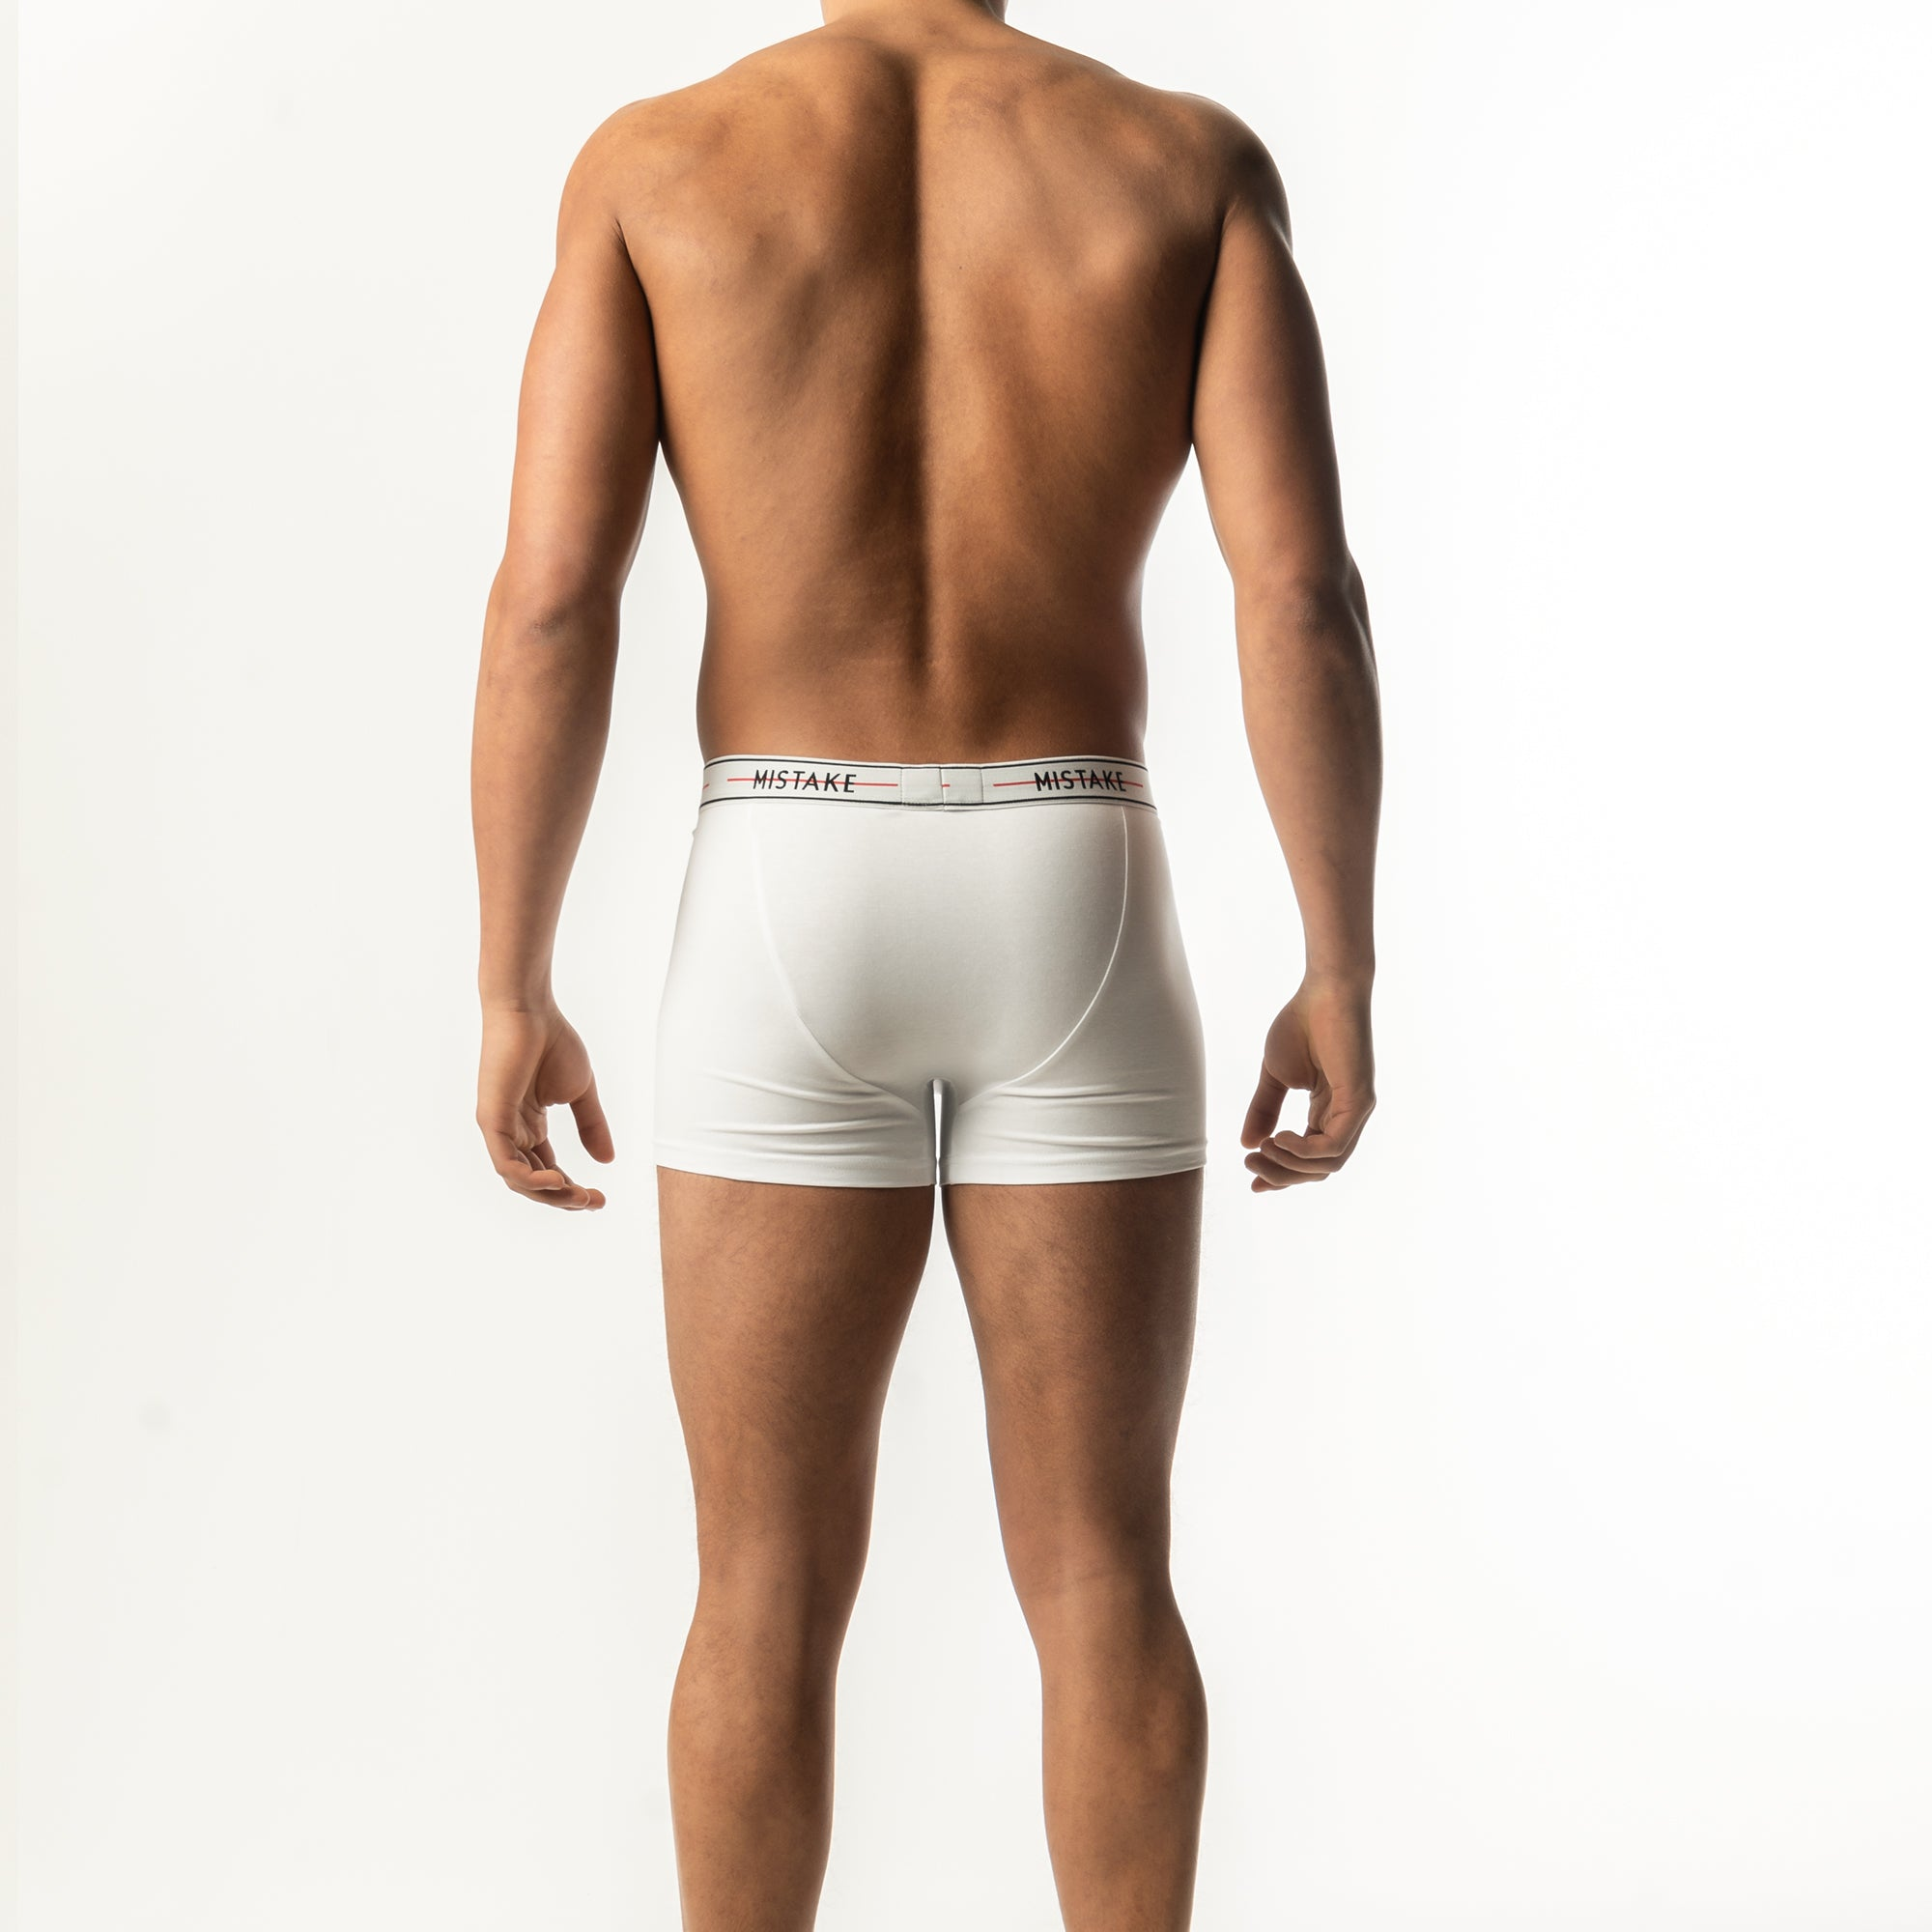 Mistake Classic Edition Boxer Shorts (Grey, White and Black)